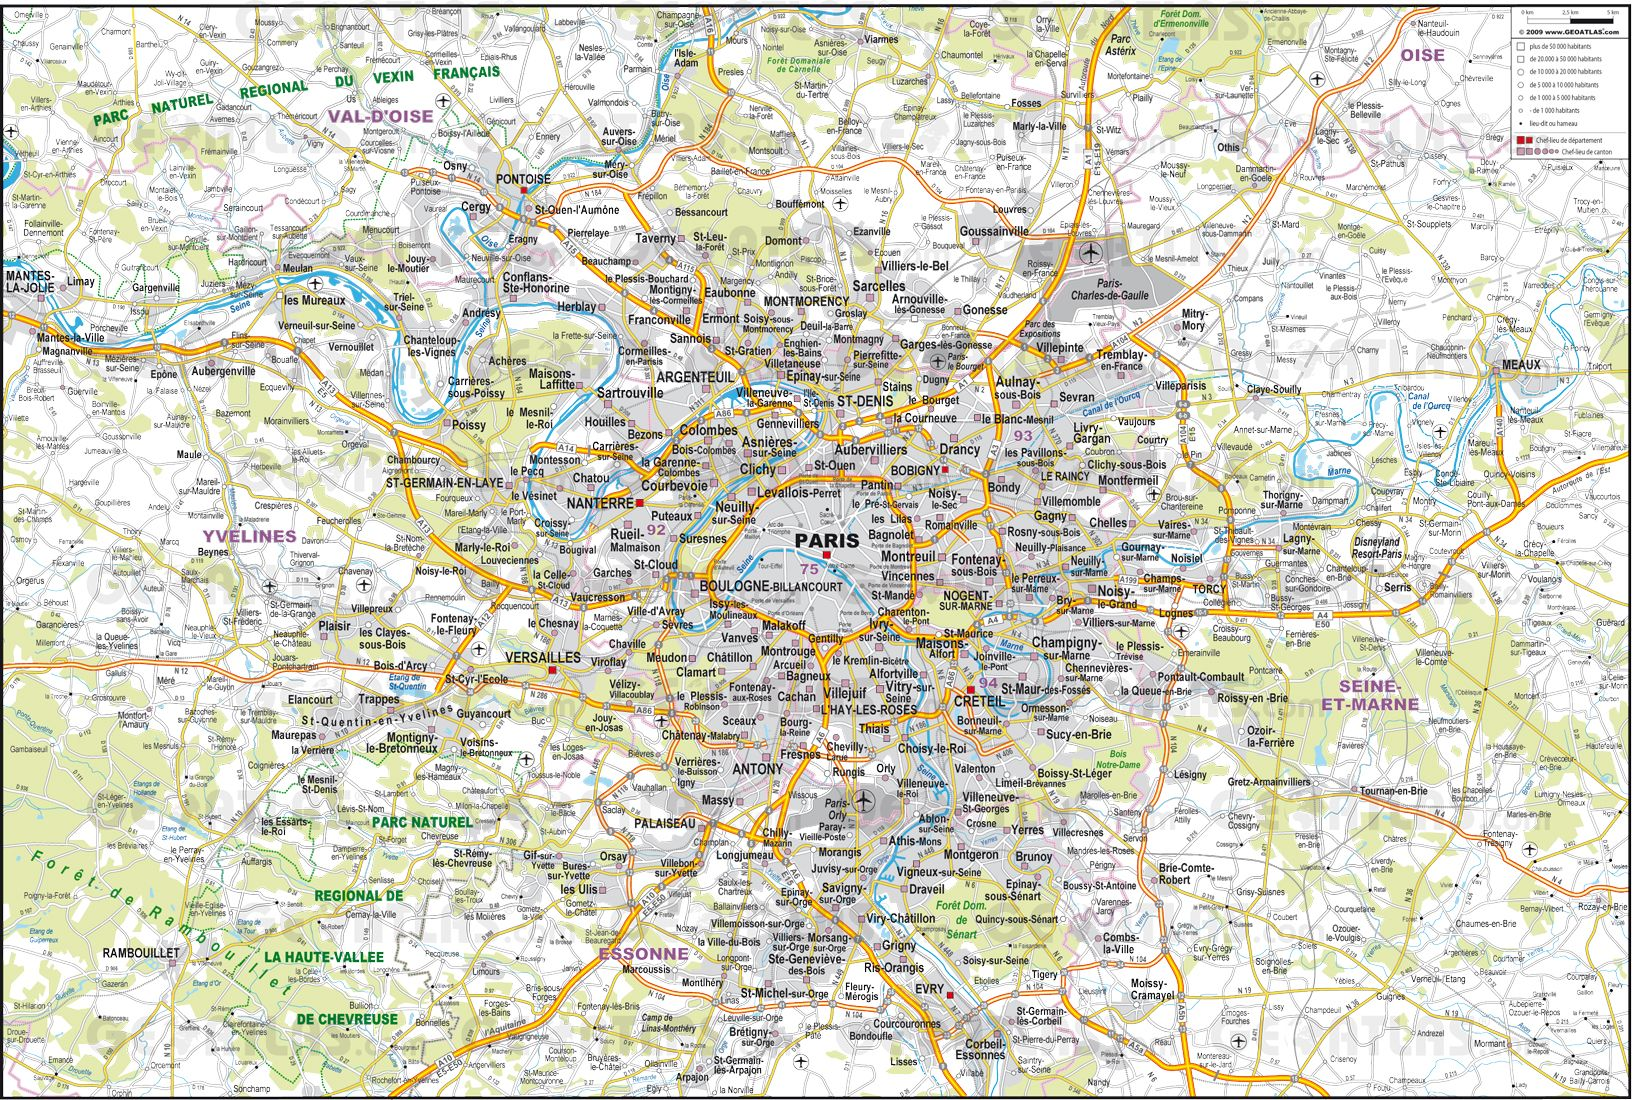 Detailed Road Map Of France.Detailed Map Of Paris France Map Of The Environs Of Paris City